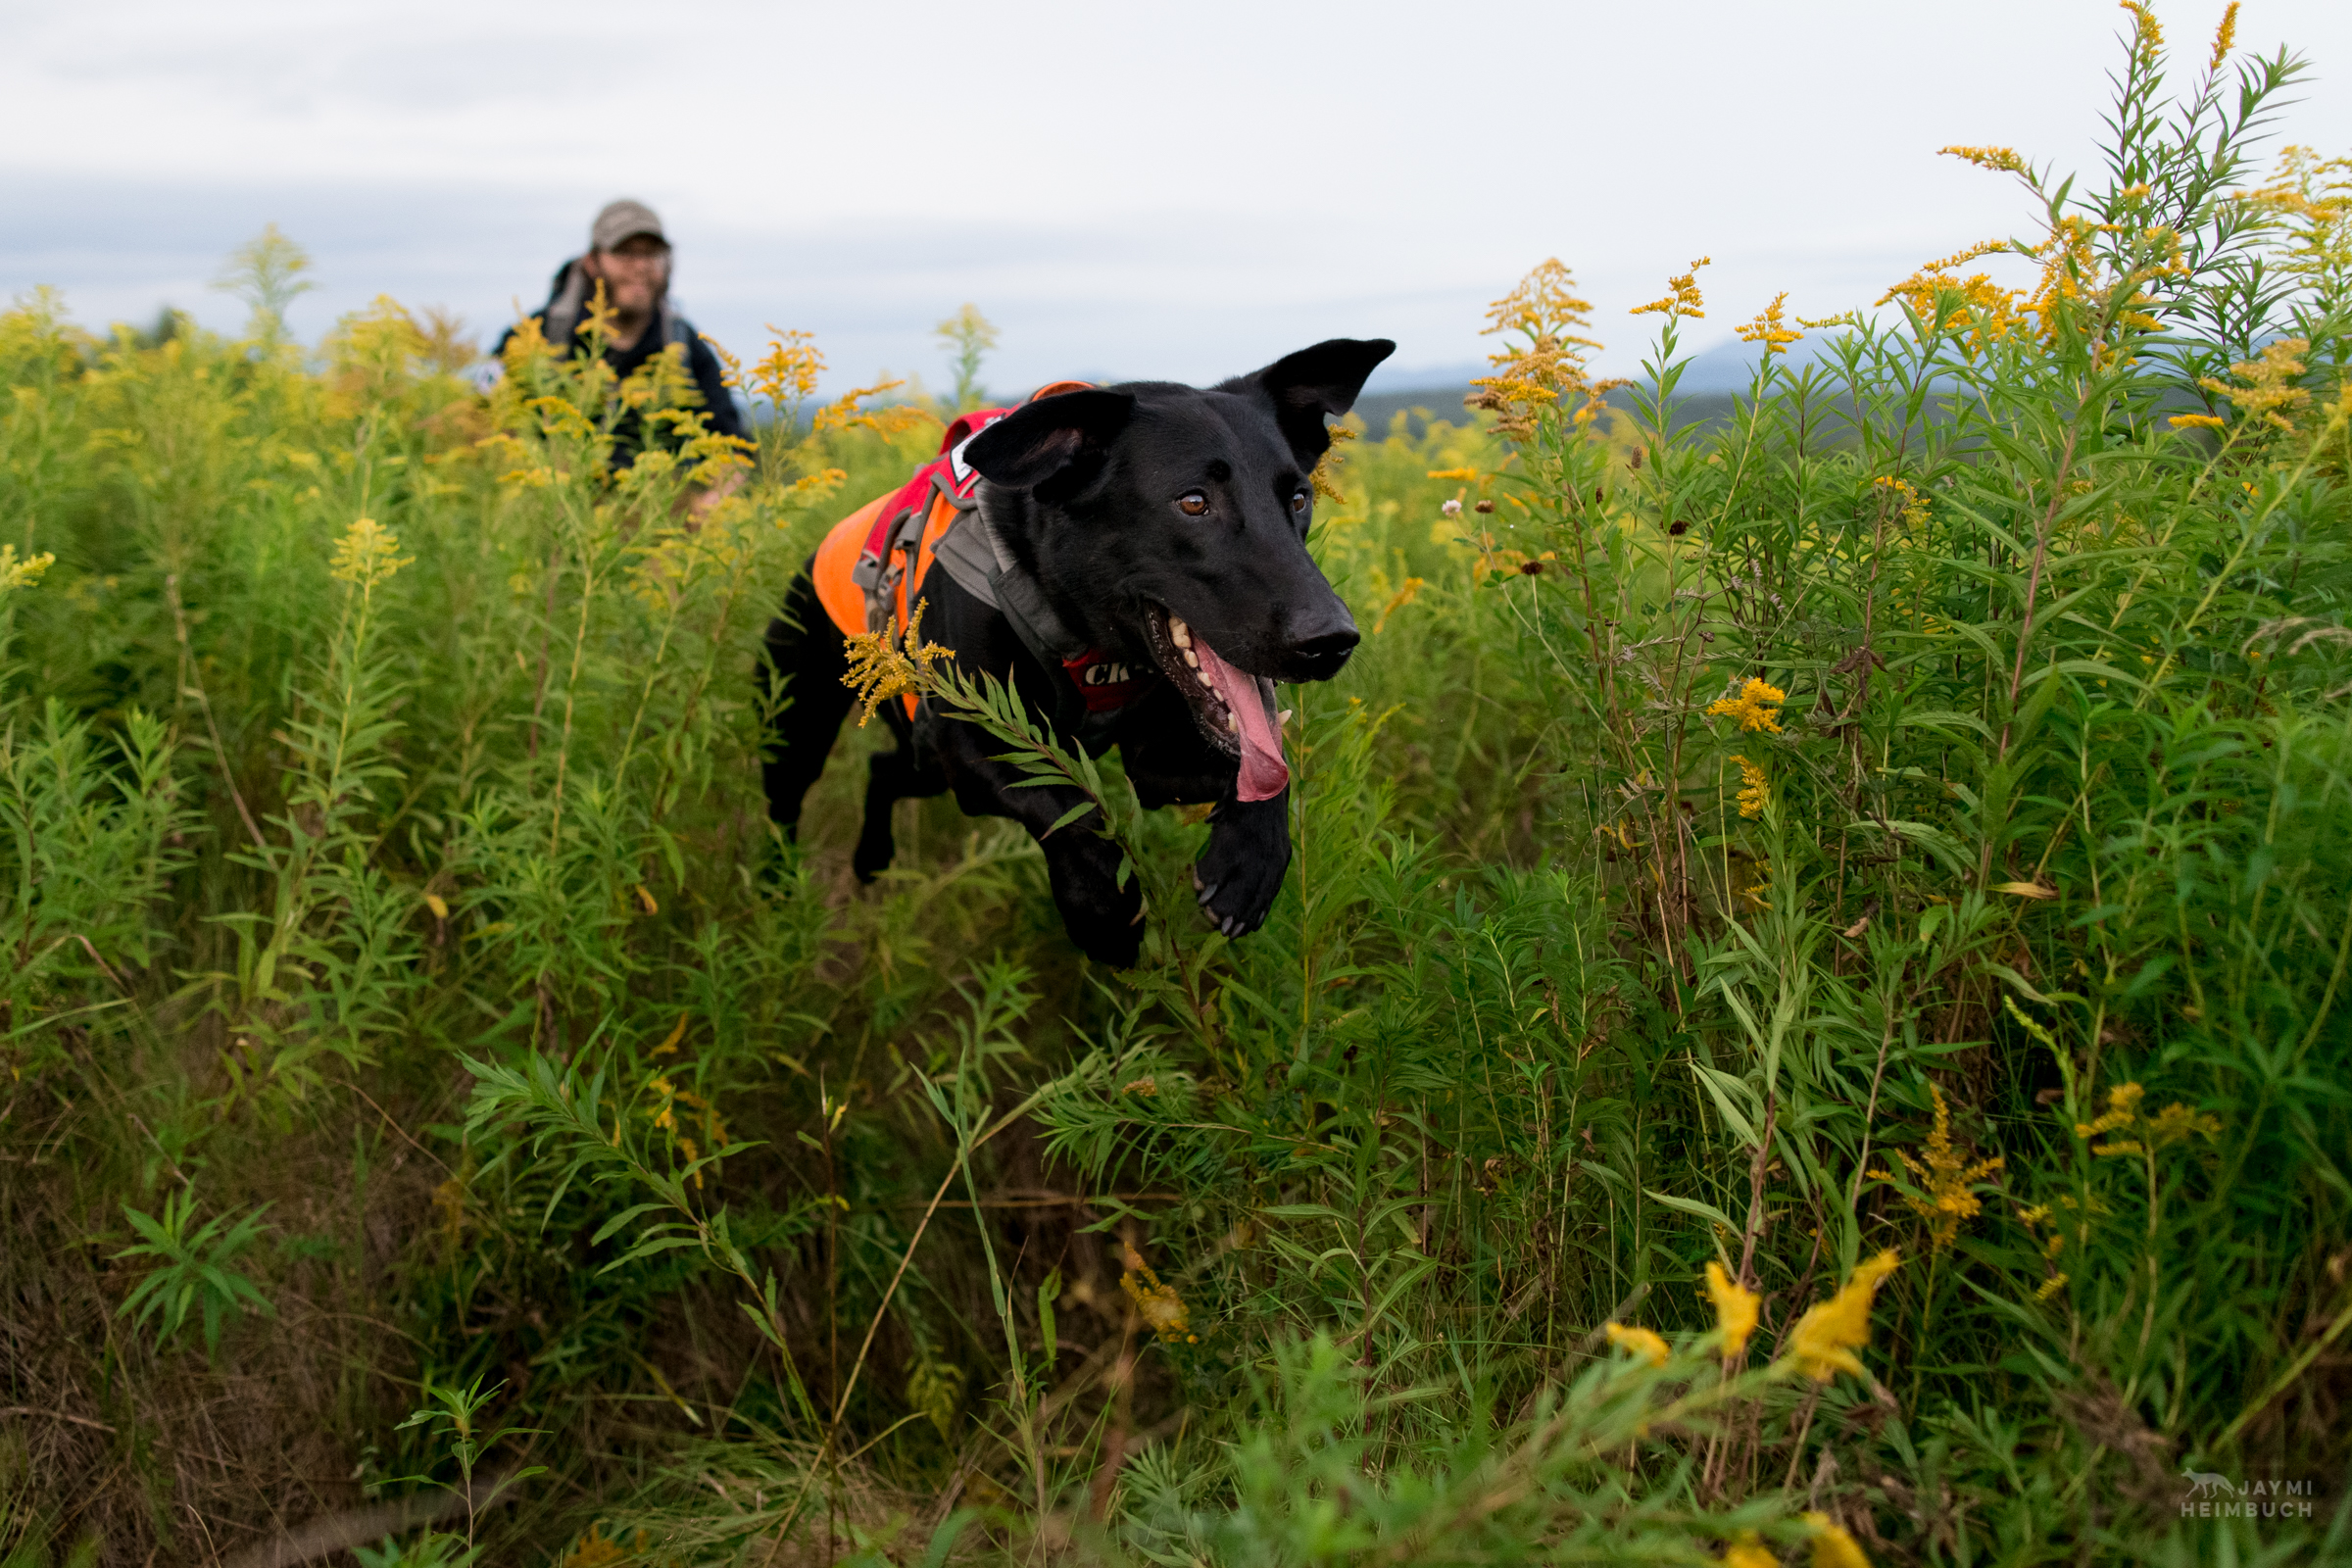 Scent detection dog (canis lupus familiaris) Ranger with University of Washington Center for Conservation Biology's Conservation Canines program searches for moose scat in New York's Adirondack mountains. The scat is collected by his handler, Justin Broderick, for a study on the species.